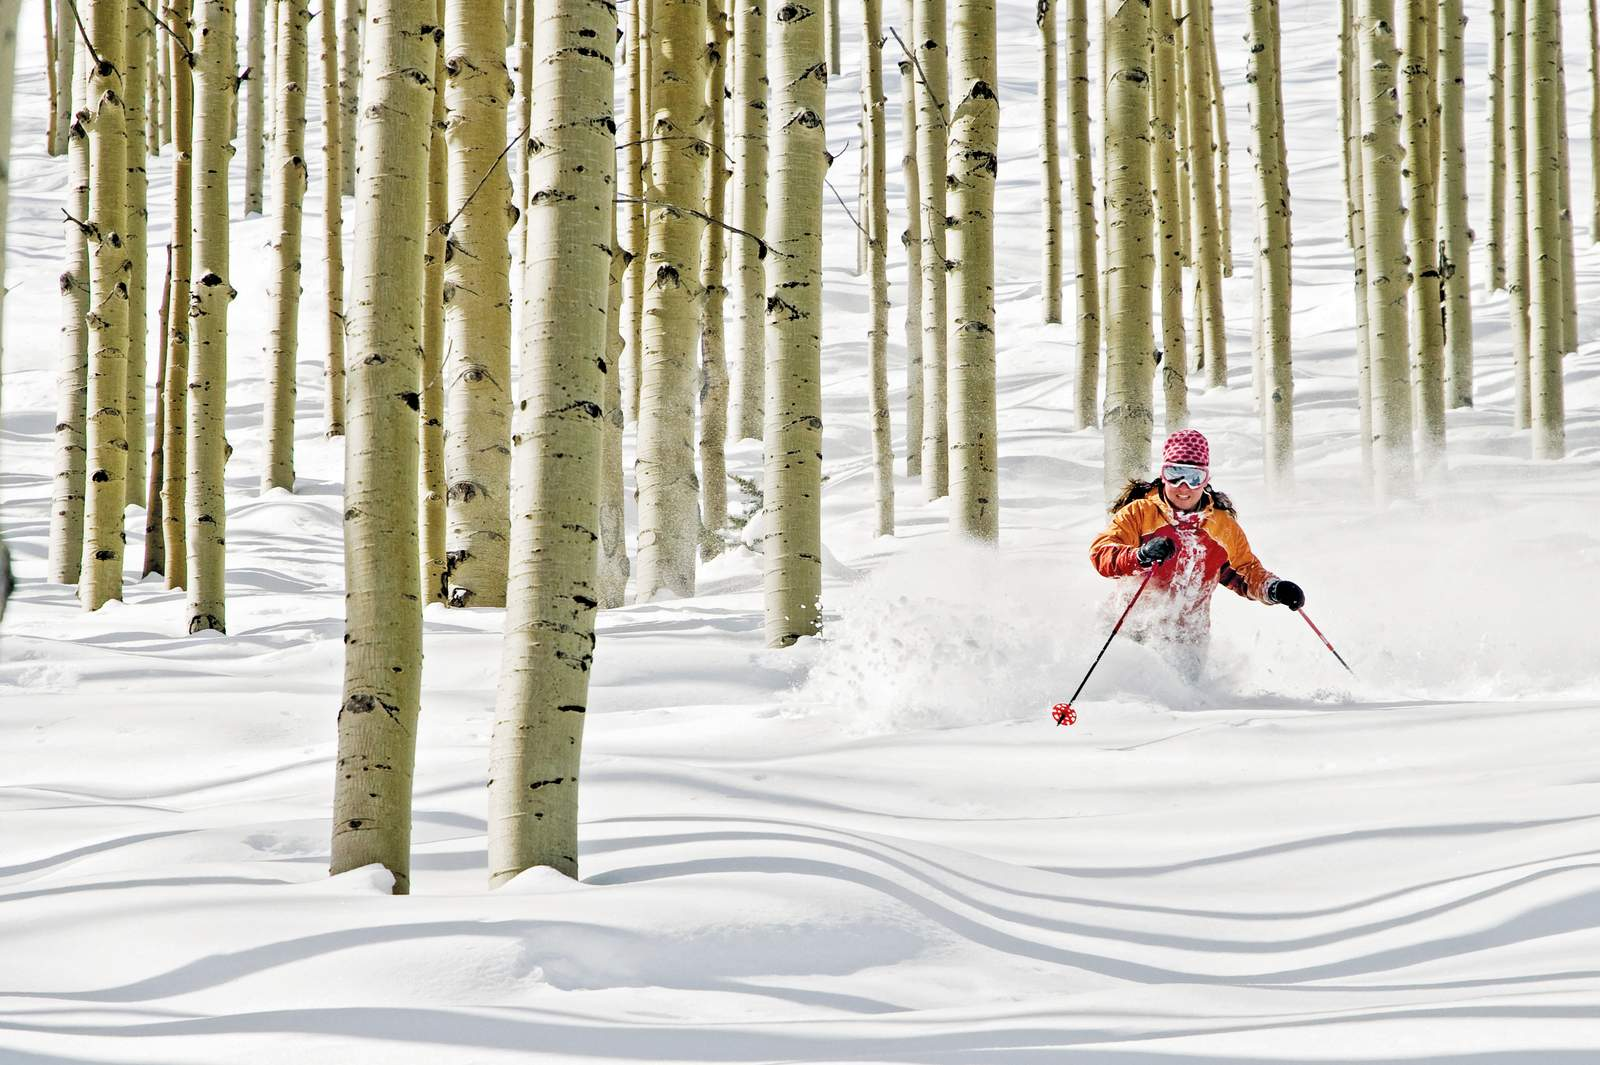 Rebekah Abrahs skiing near the Dreamcatcher Lift at The Canyons.